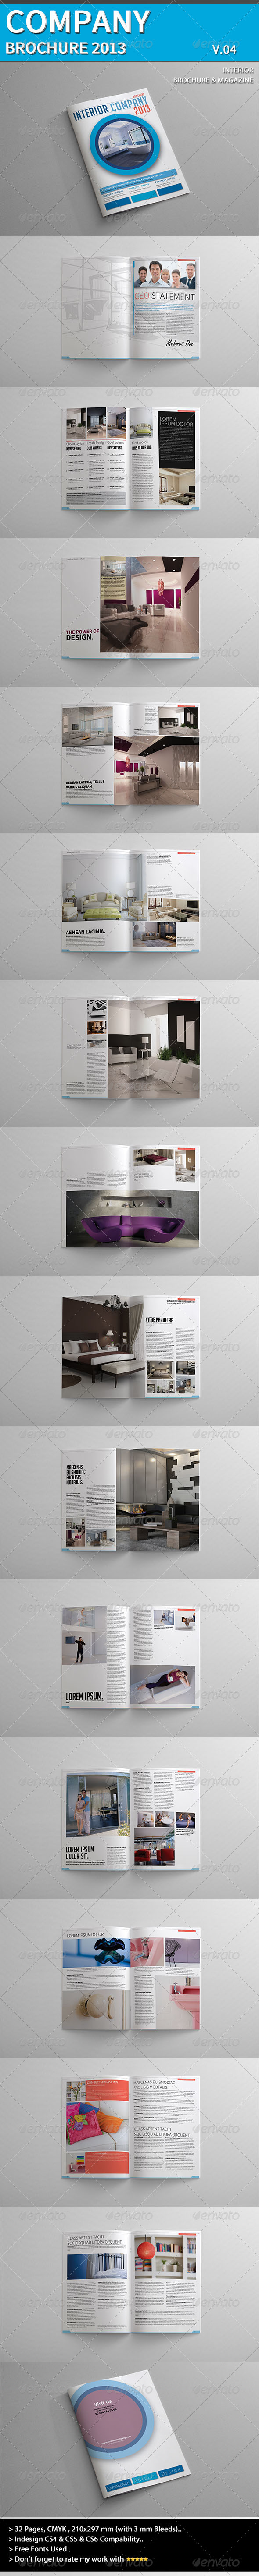 GraphicRiver Company Brochure 2013 Part 04 3902102